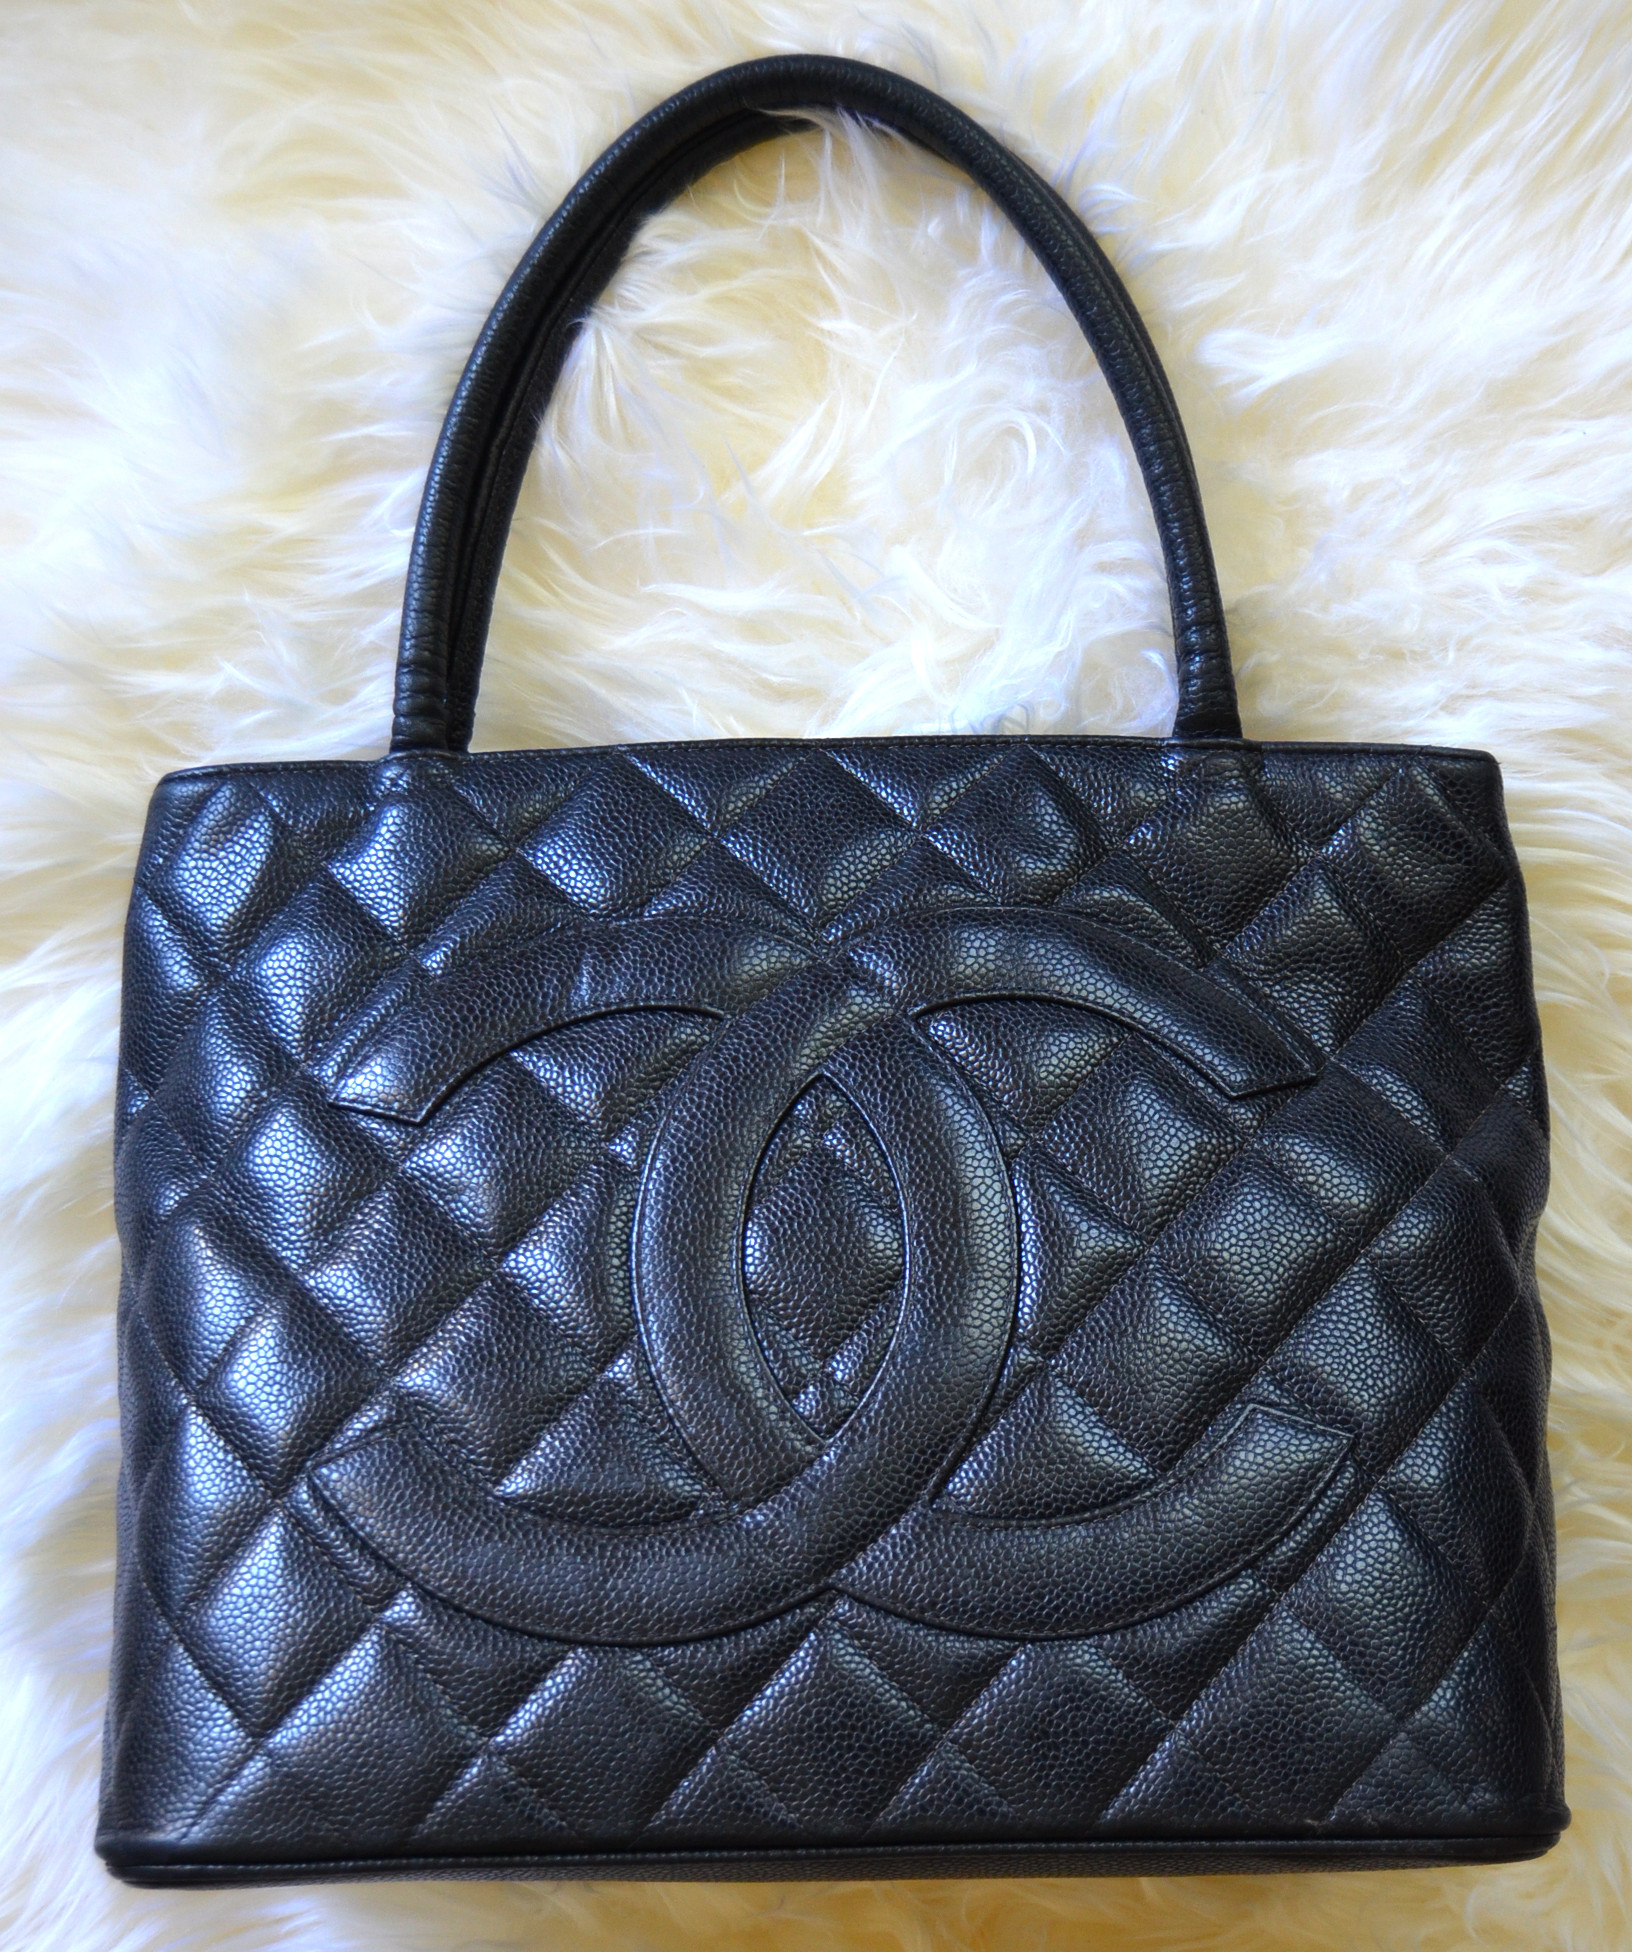 chanelover chanel tote medallion